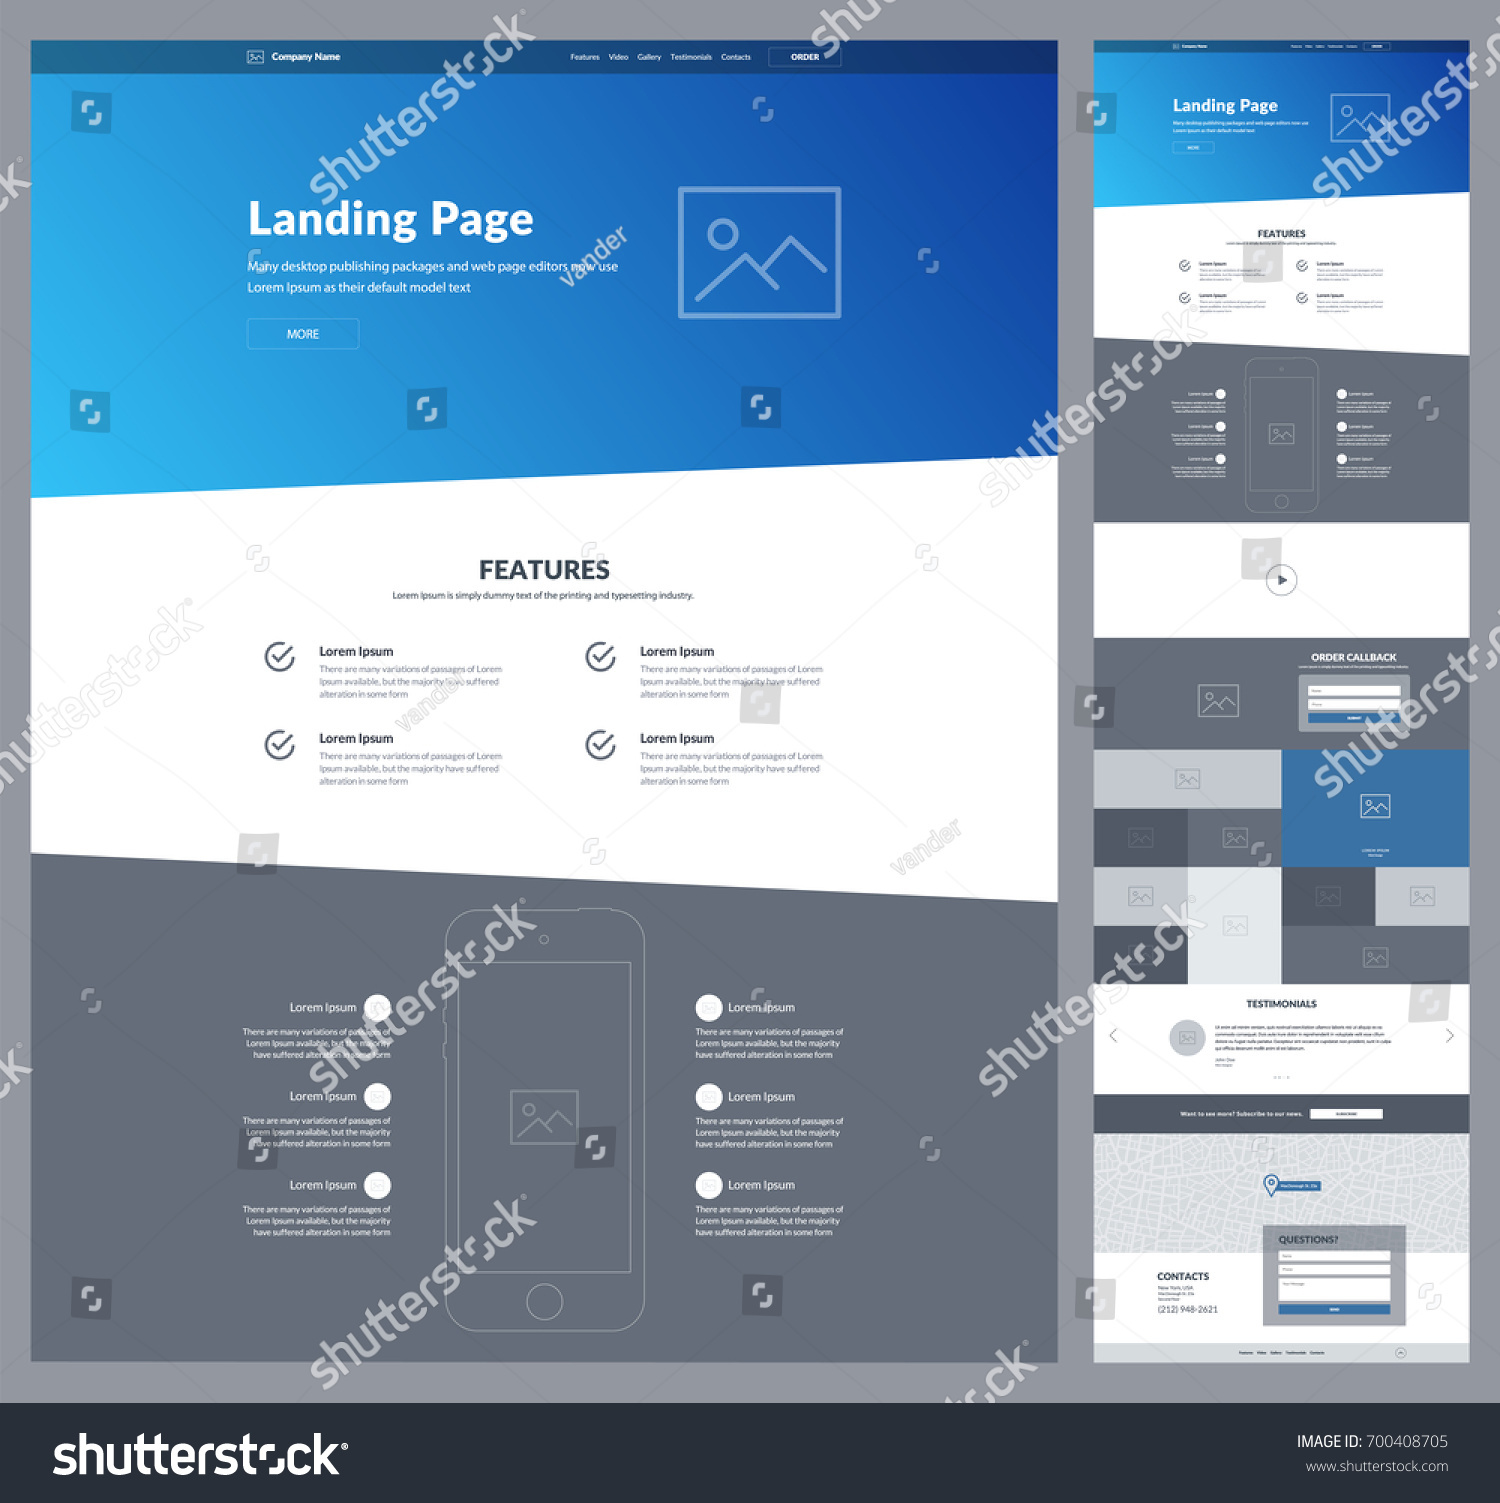 one page website design template businessのベクター画像素材